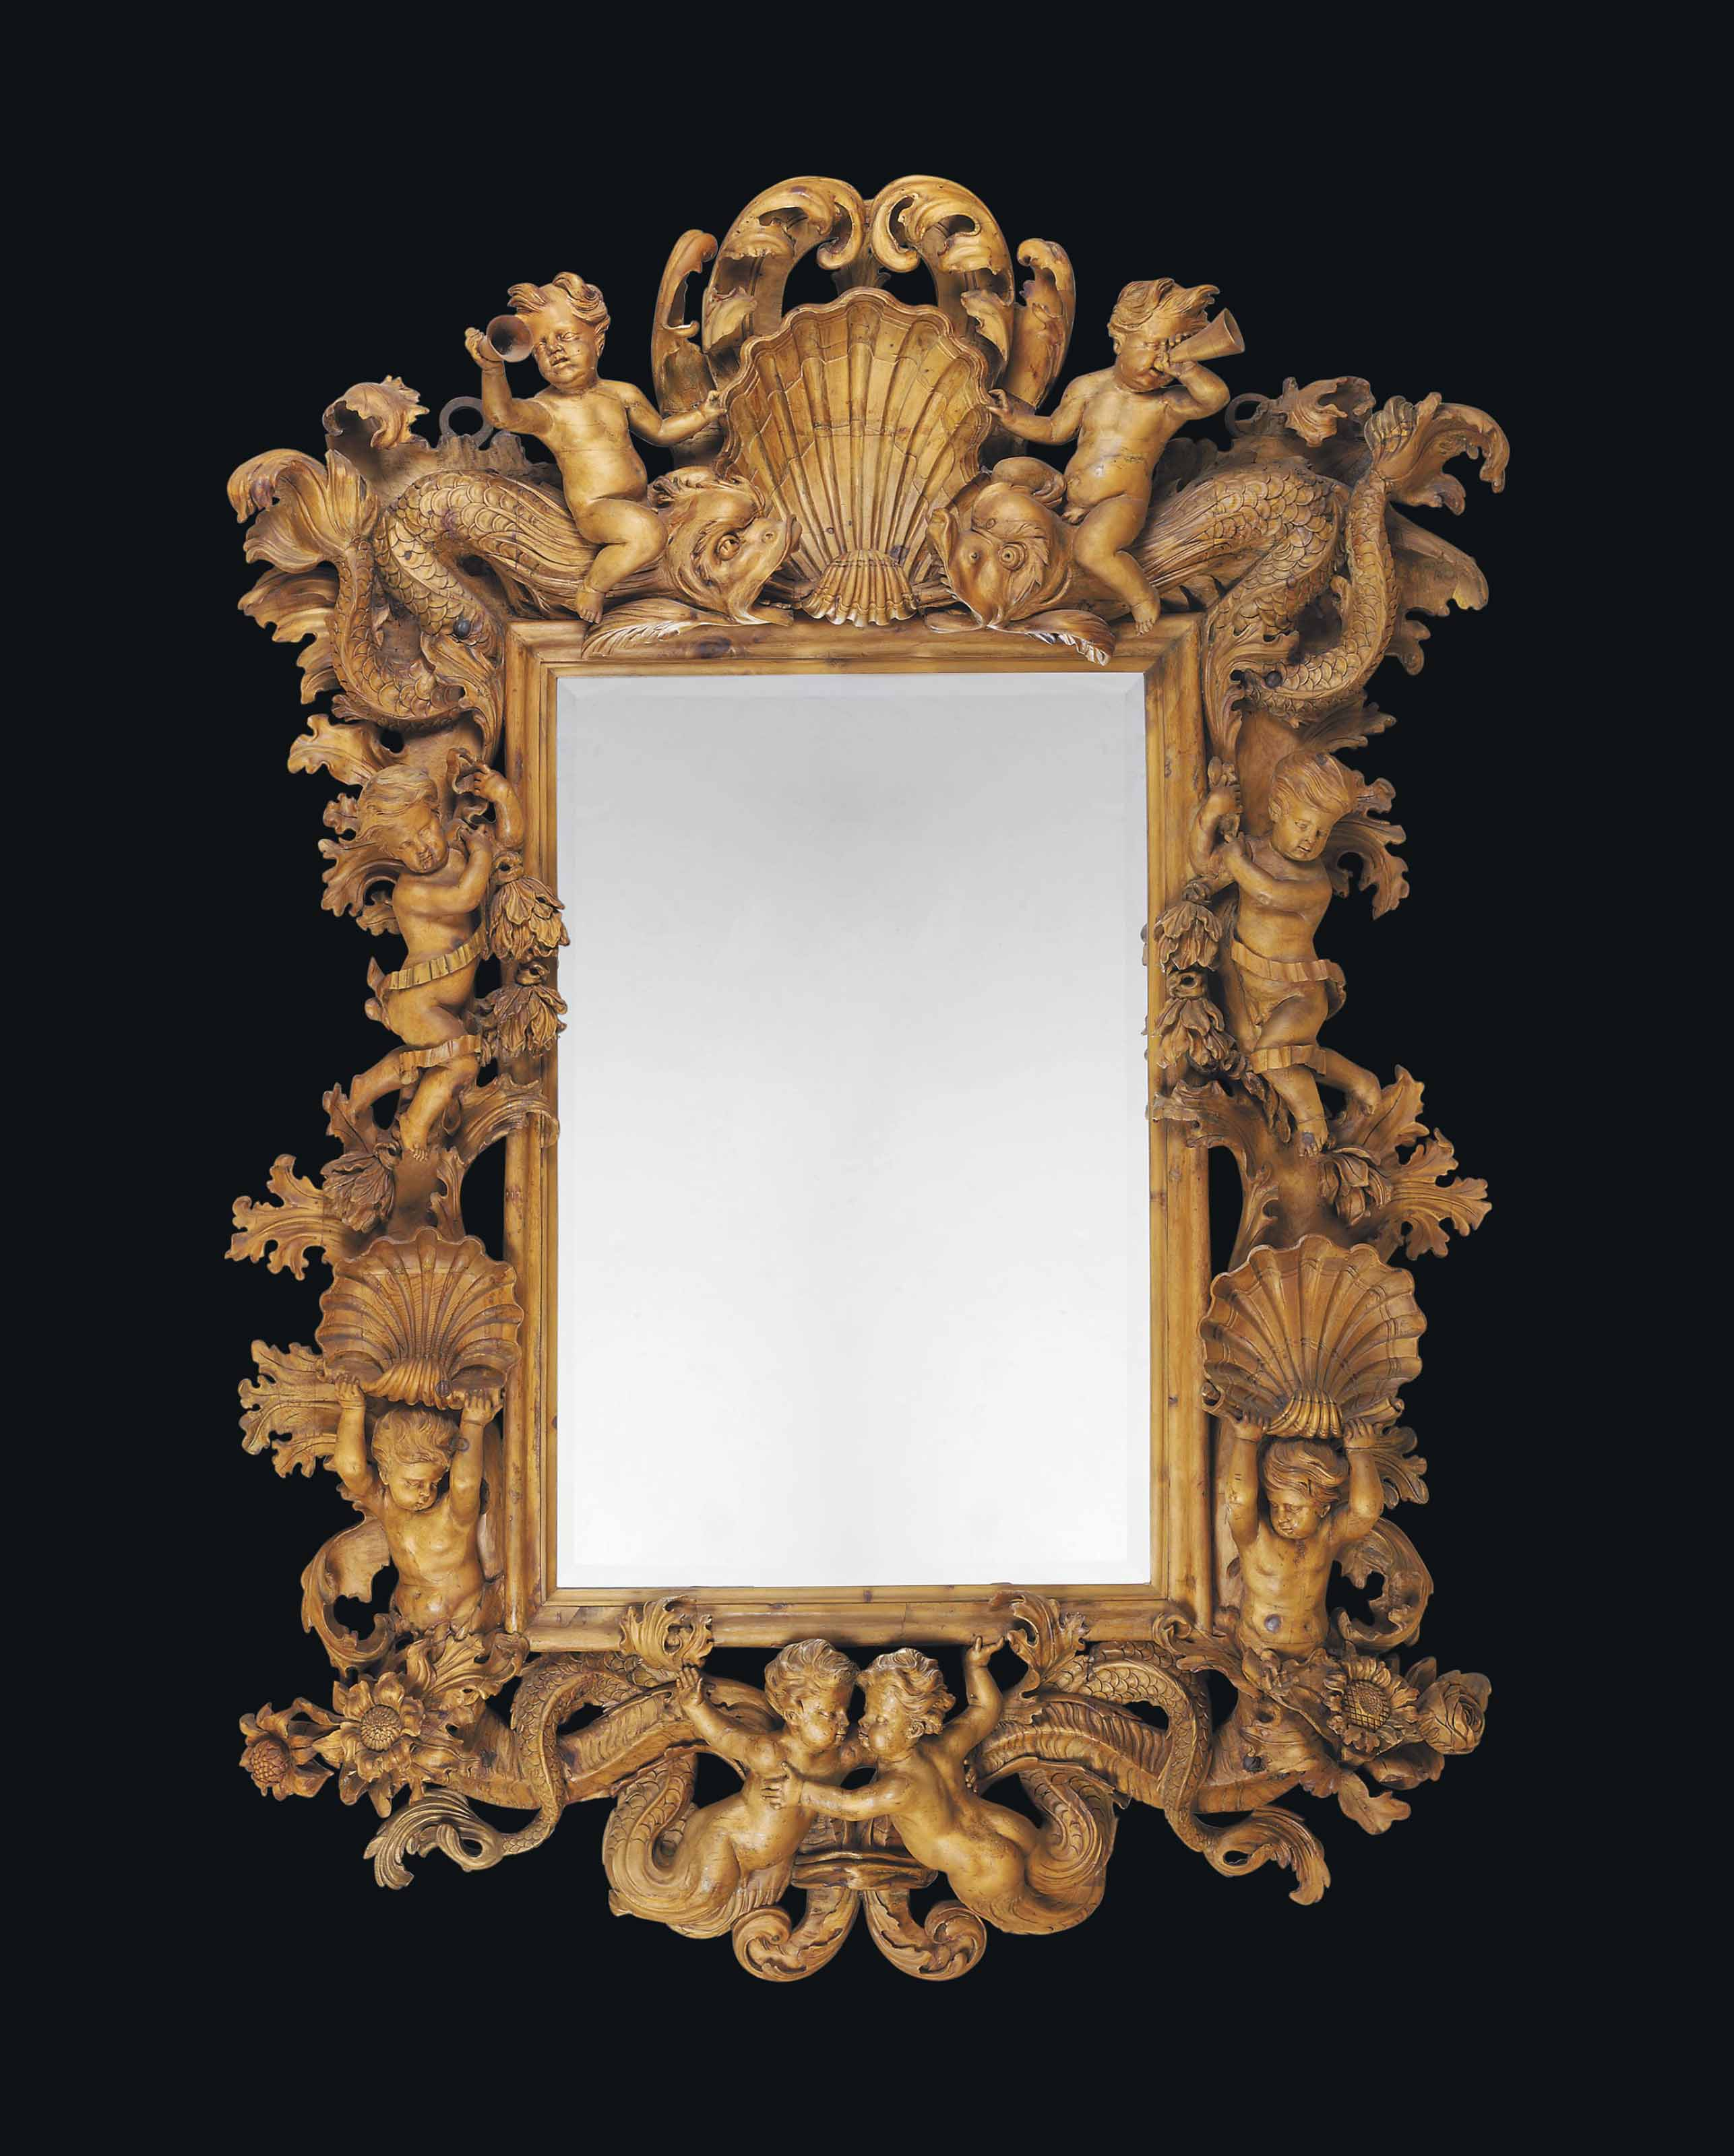 A LARGE NORTH ITALIAN CARVED PINE MIRROR